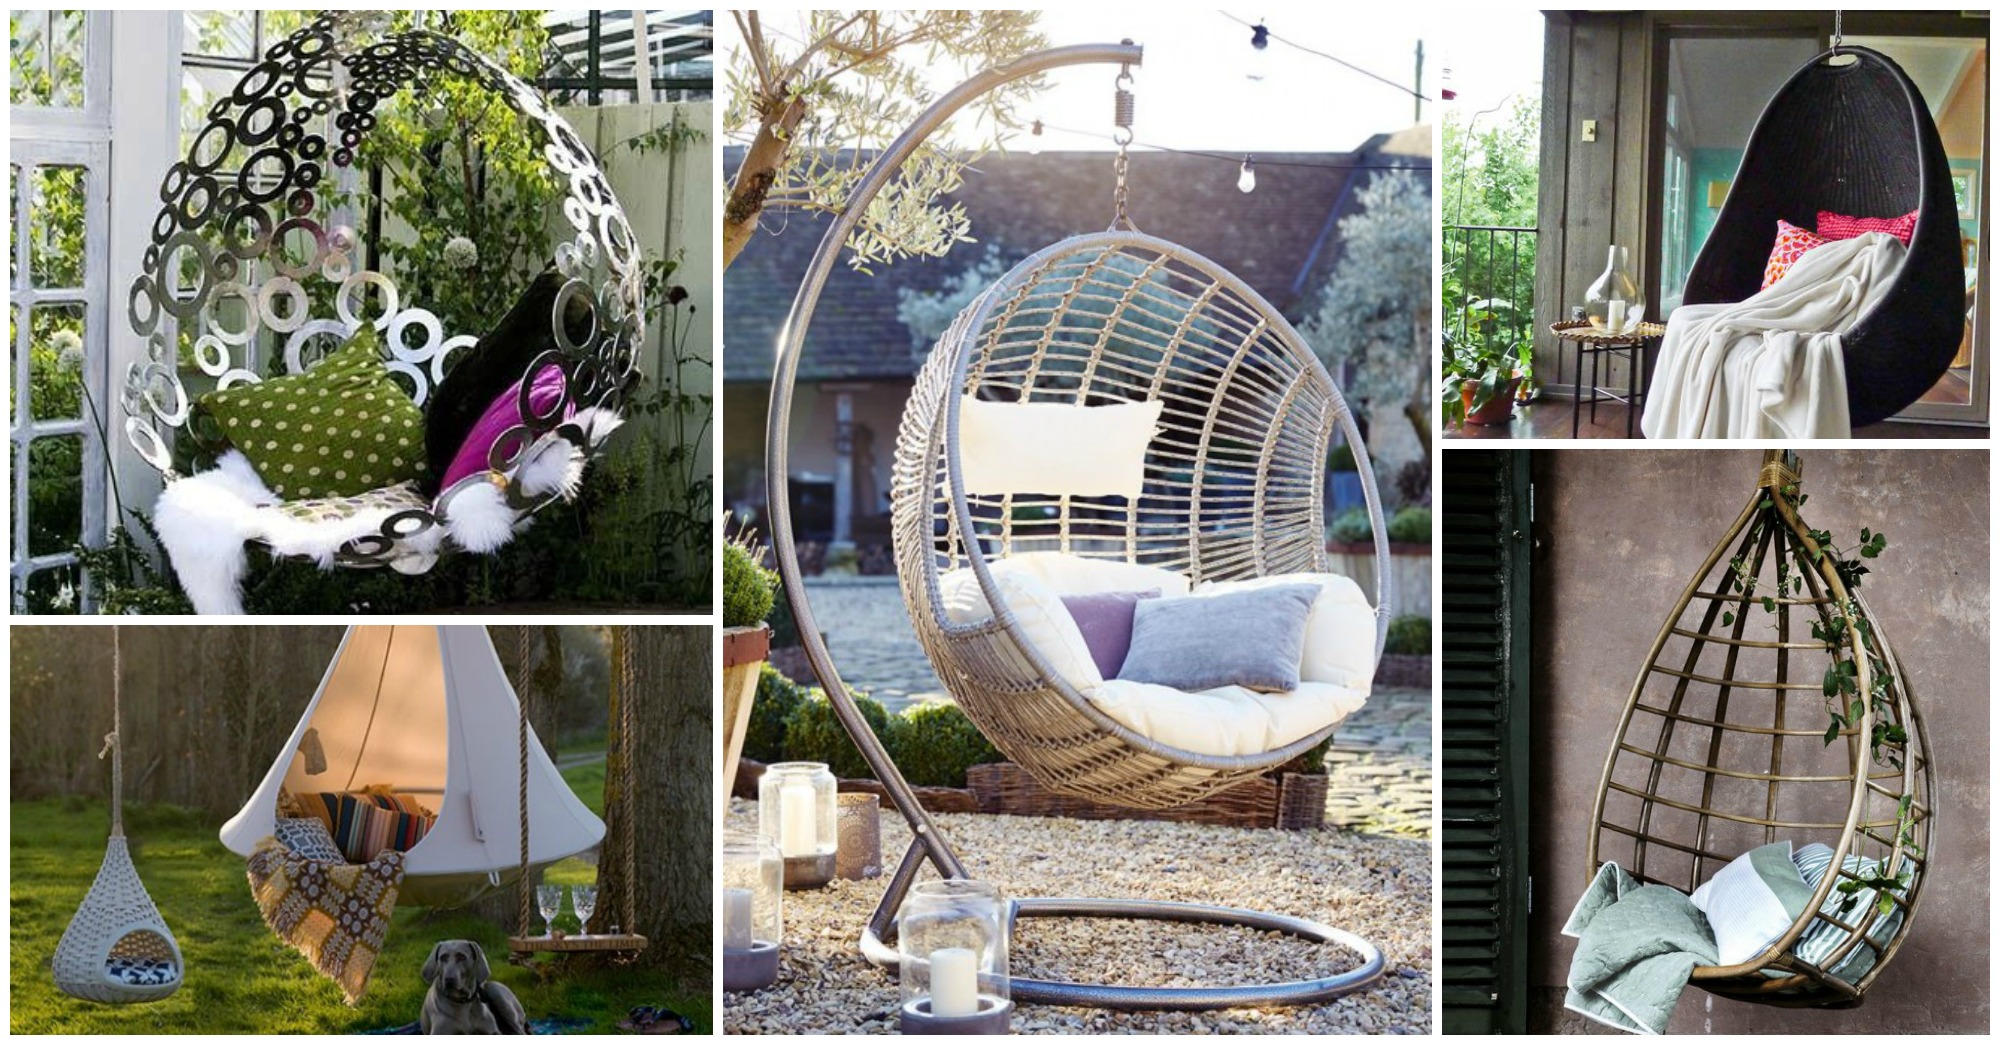 Hanging Chairs for Ultimate Relaxation in the Backyard